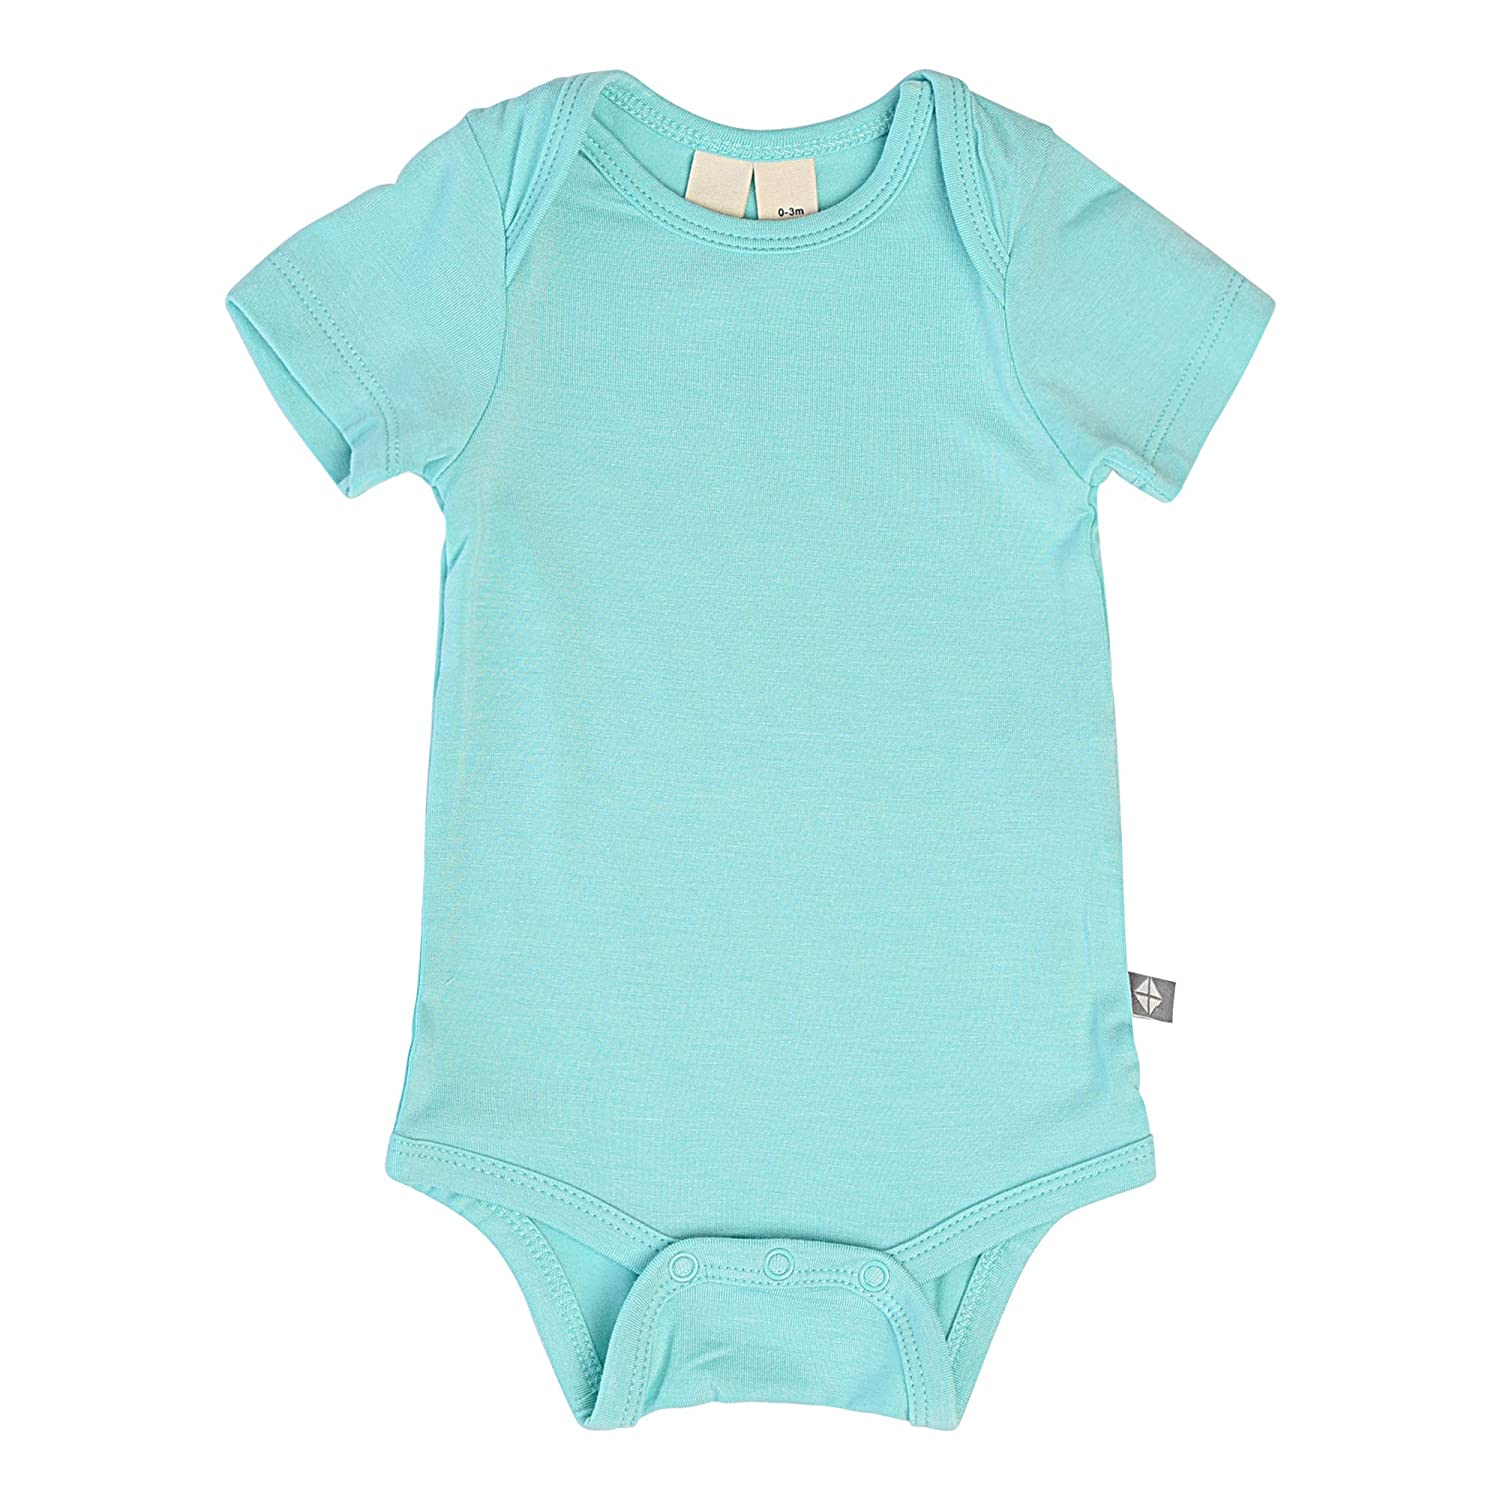 KYTE BABY Bodysuit Short Sleeve Baby Bodysuits Made from Organic Bamboo Rayon Material Unisex Bodysuits